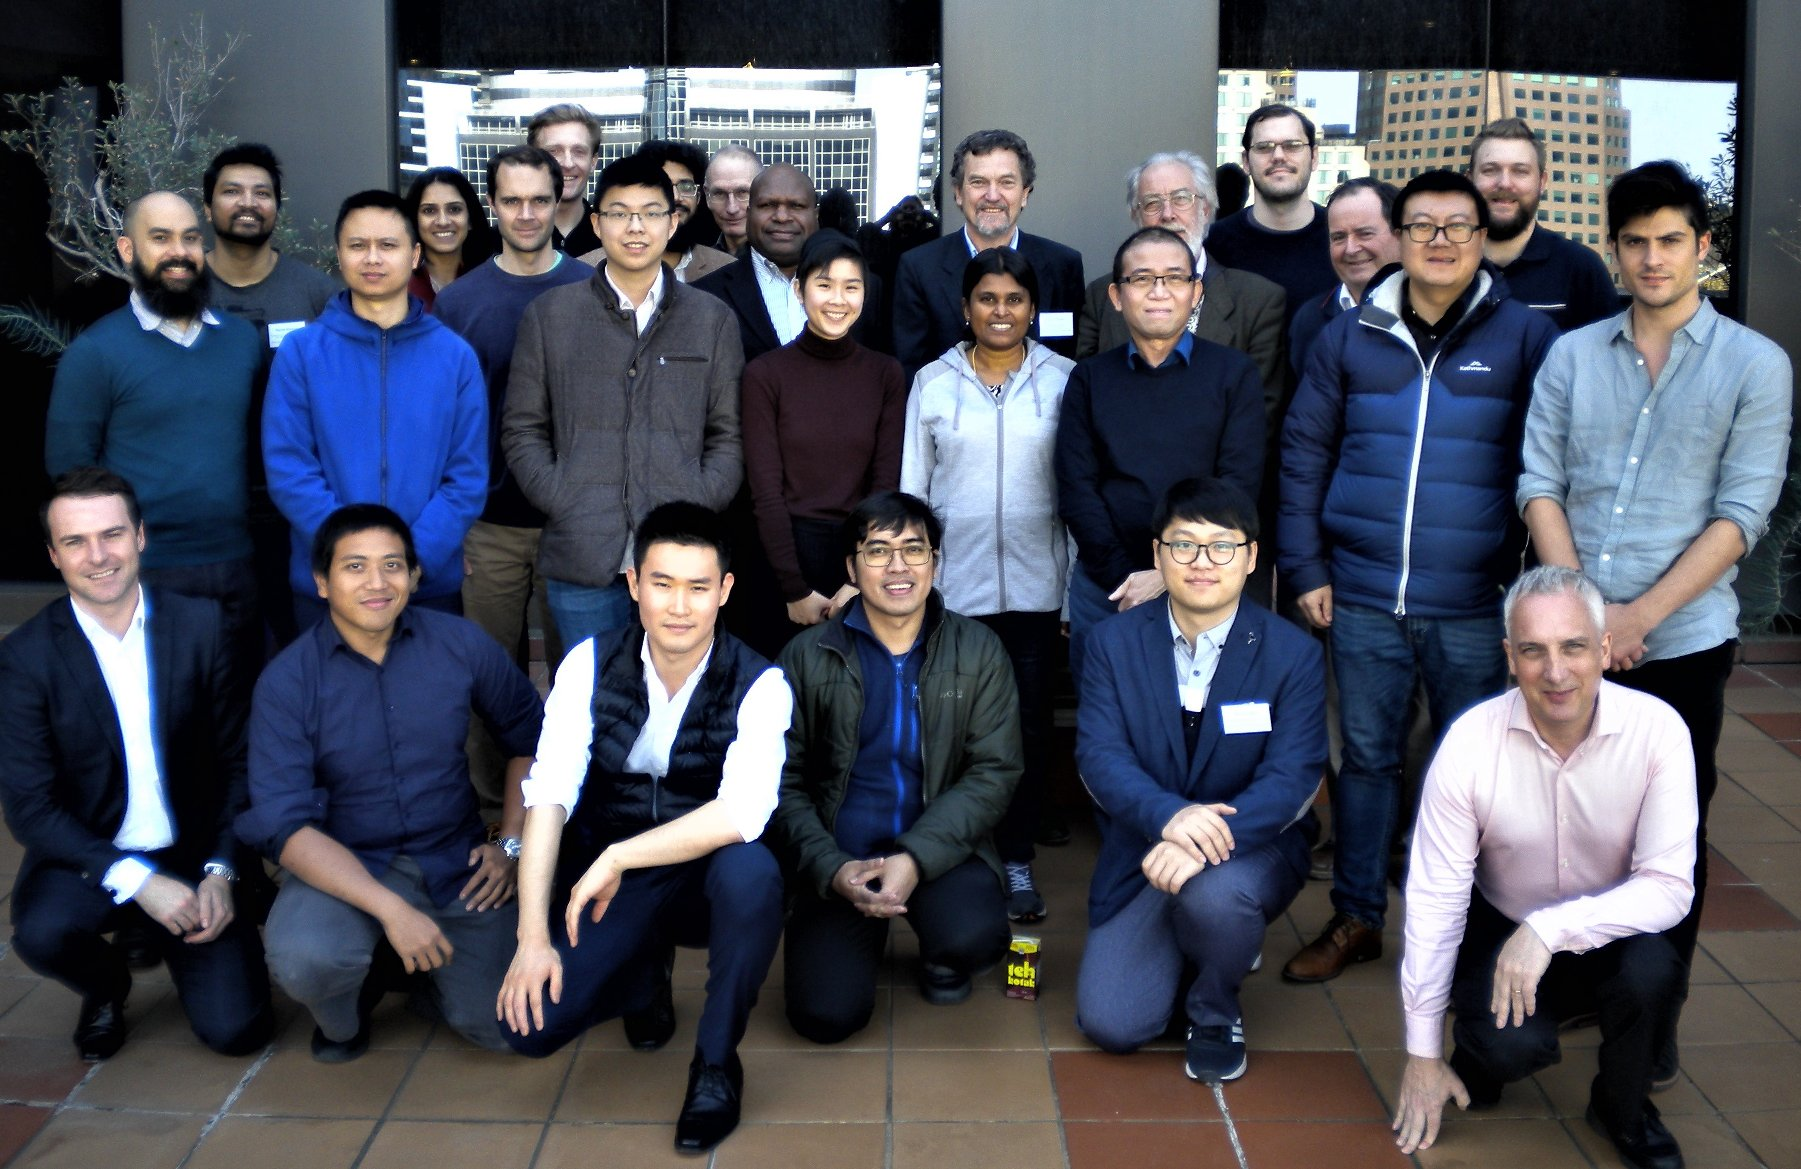 July 2019 Practical CGE course held at Victoria University, Melbourne